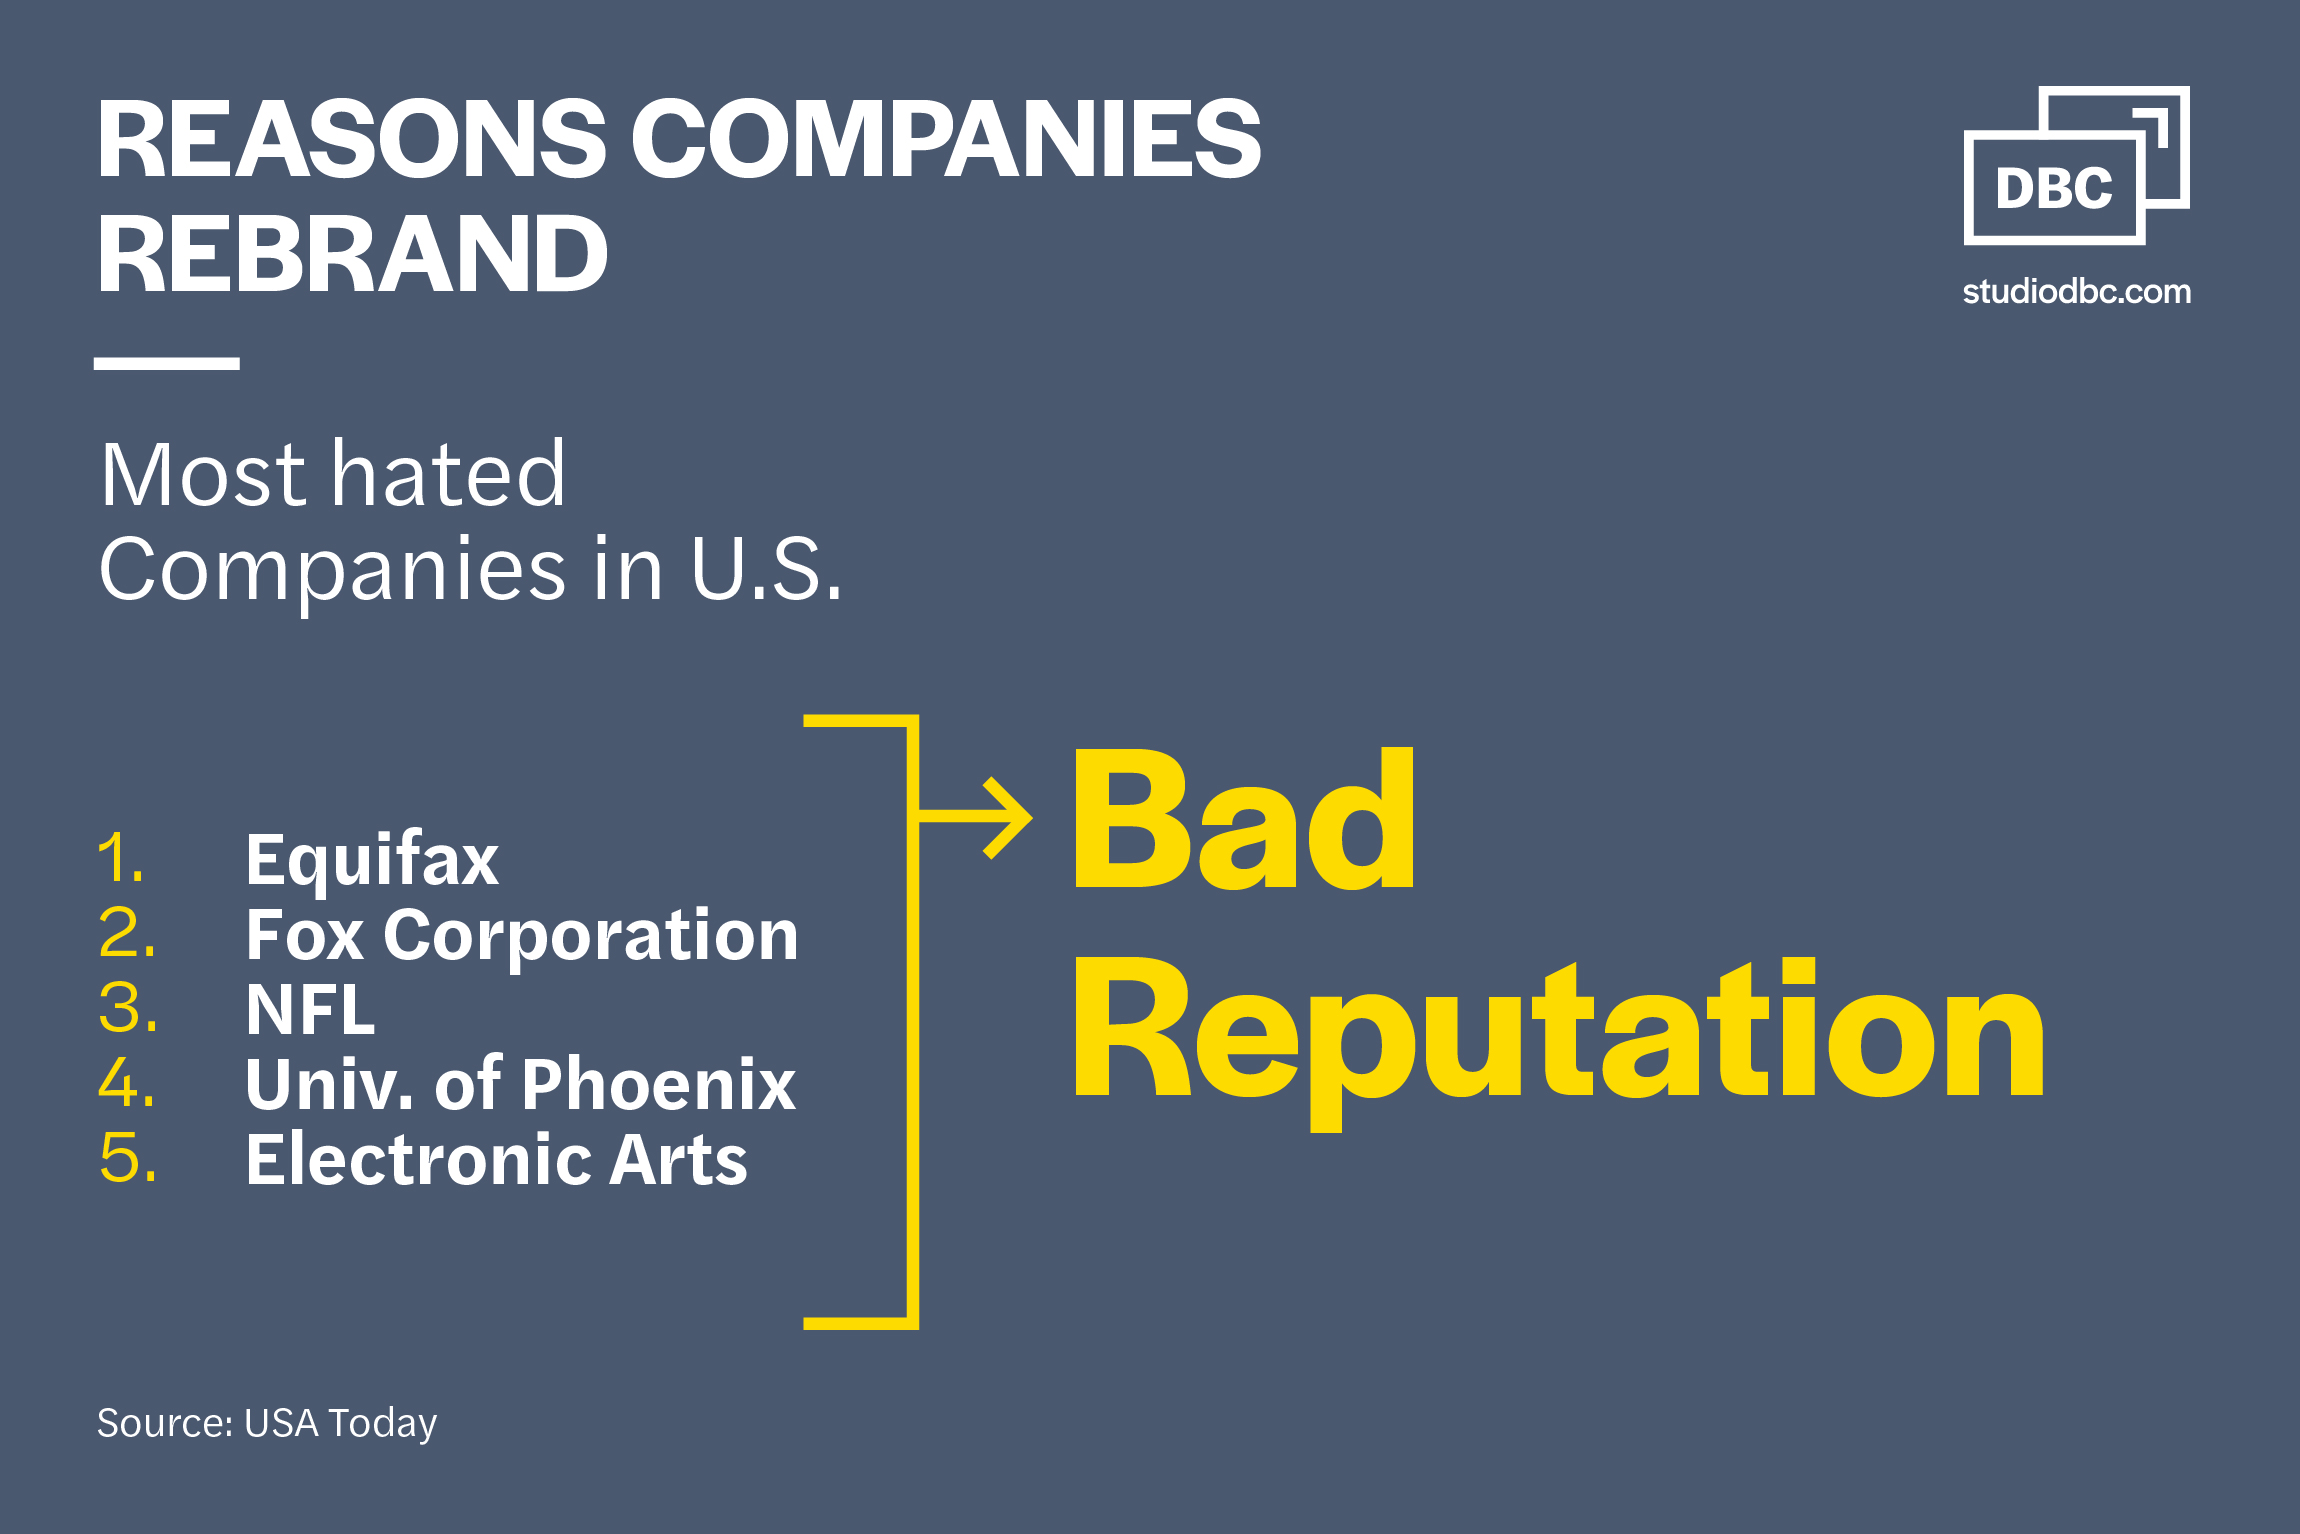 Reasons companies rebrand - Most hated companies in U.S.